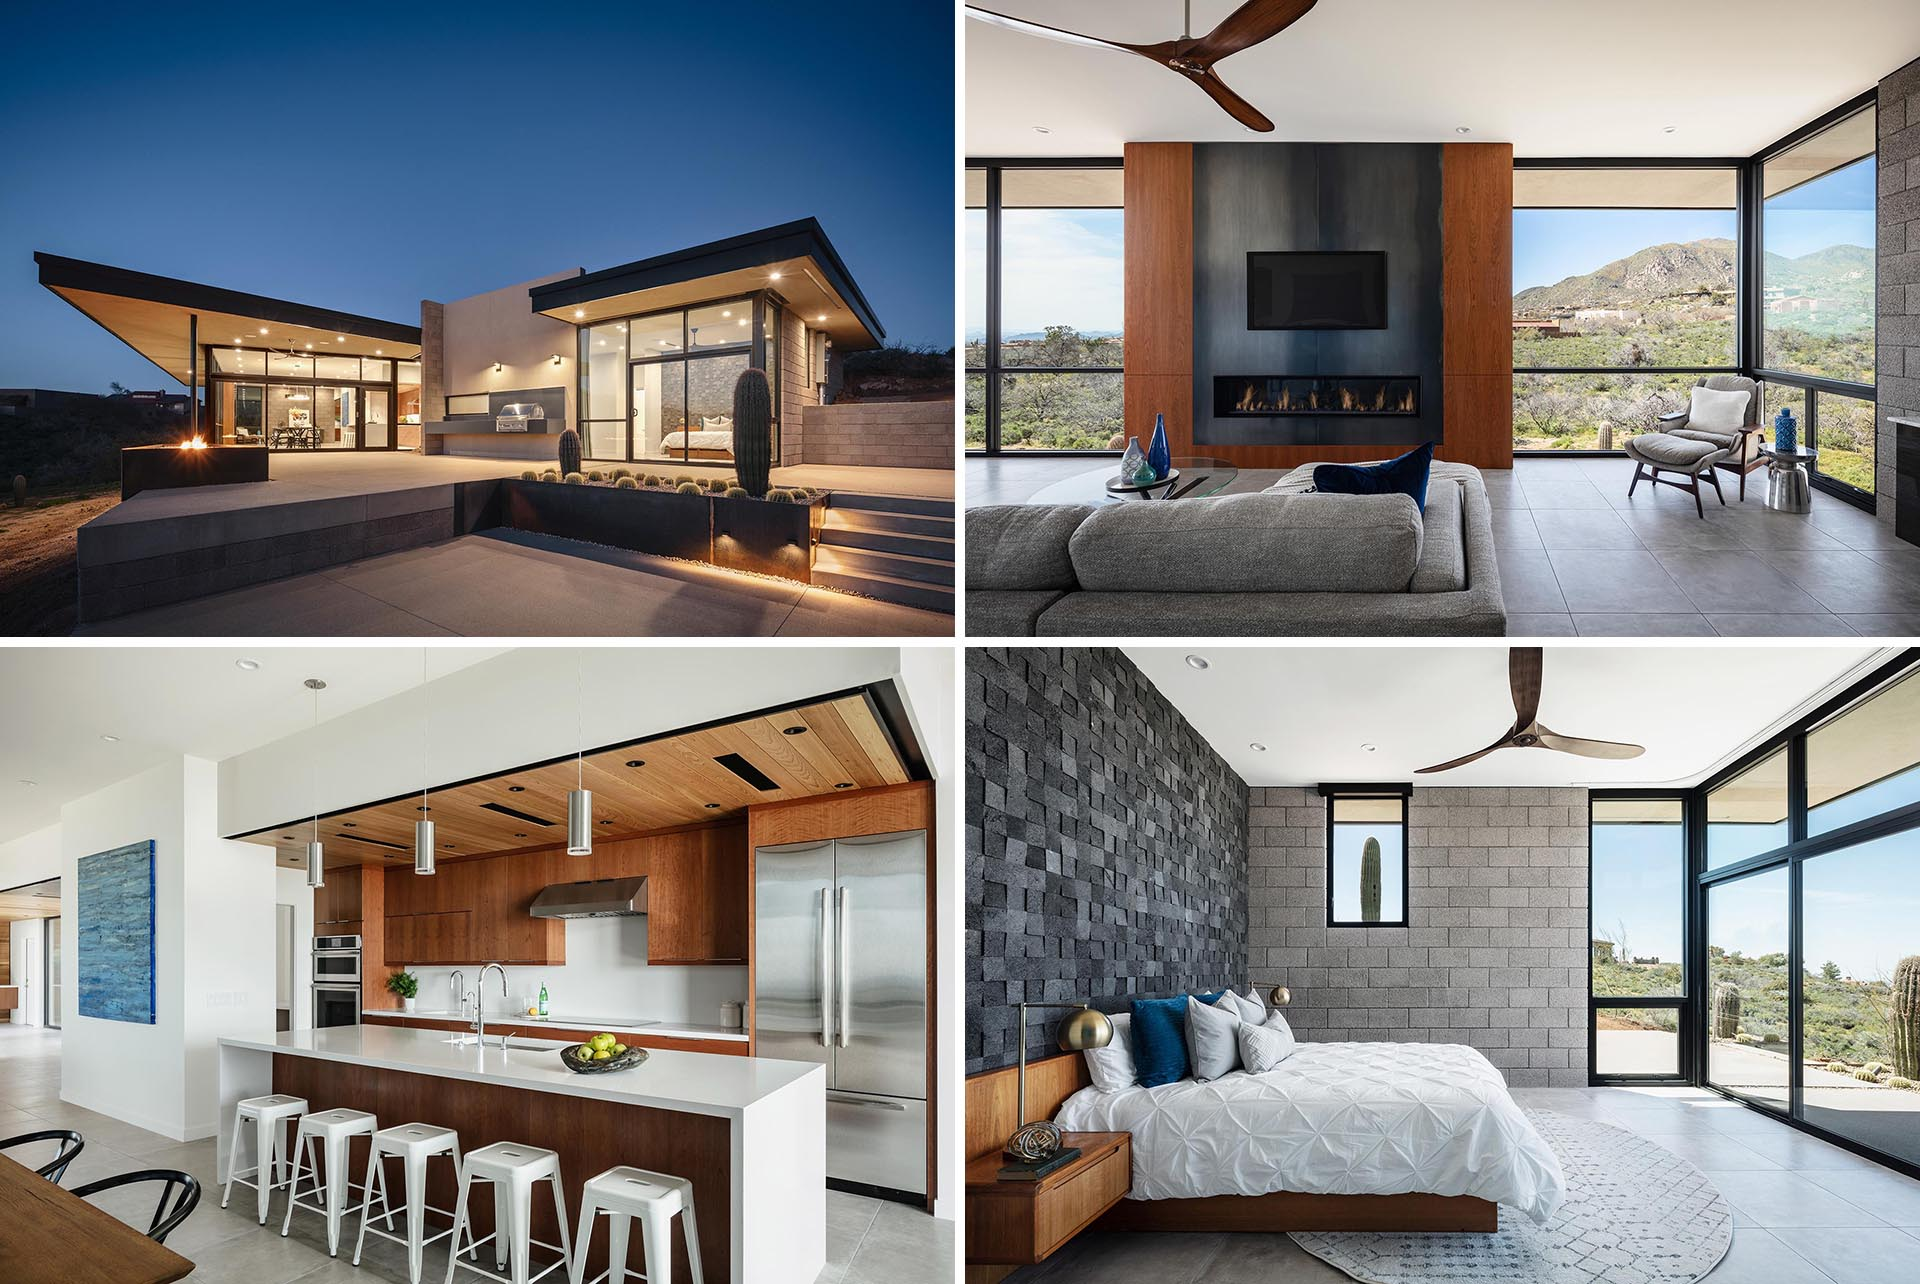 A modern desert home with an open plan interior and large windows with views of the surrounding area.